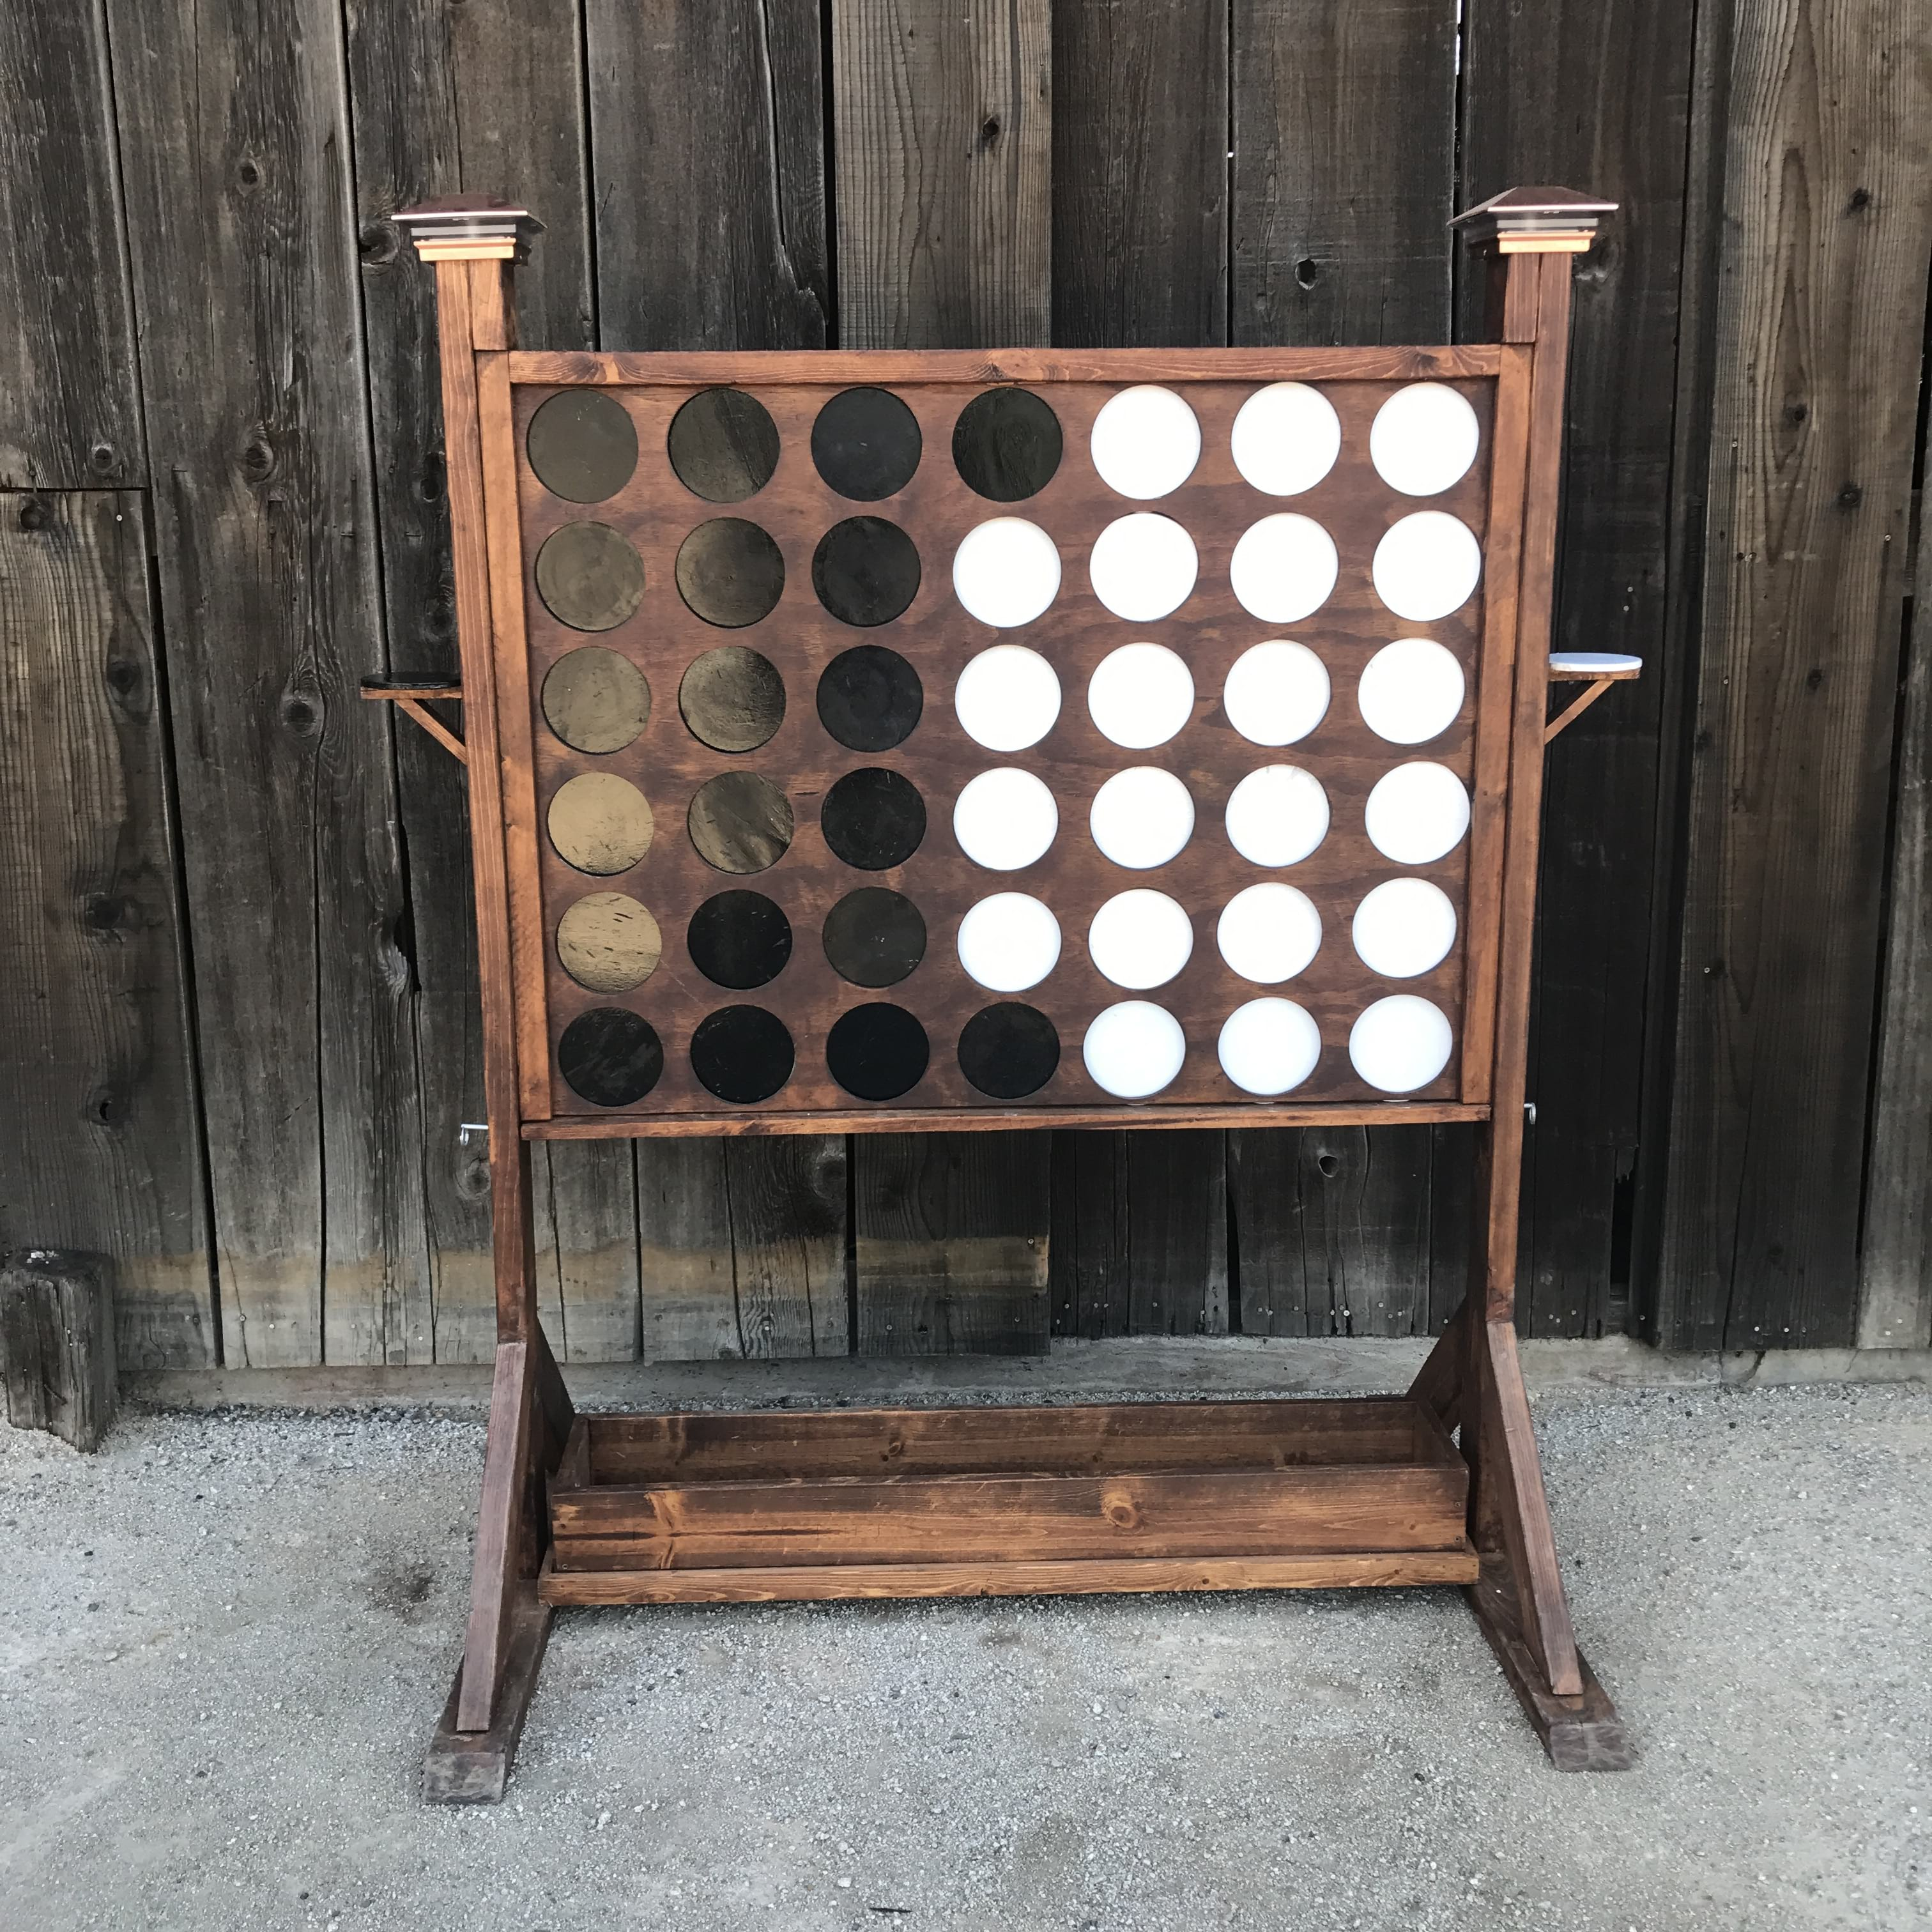 GIANT CONNECT 4 -delivery only